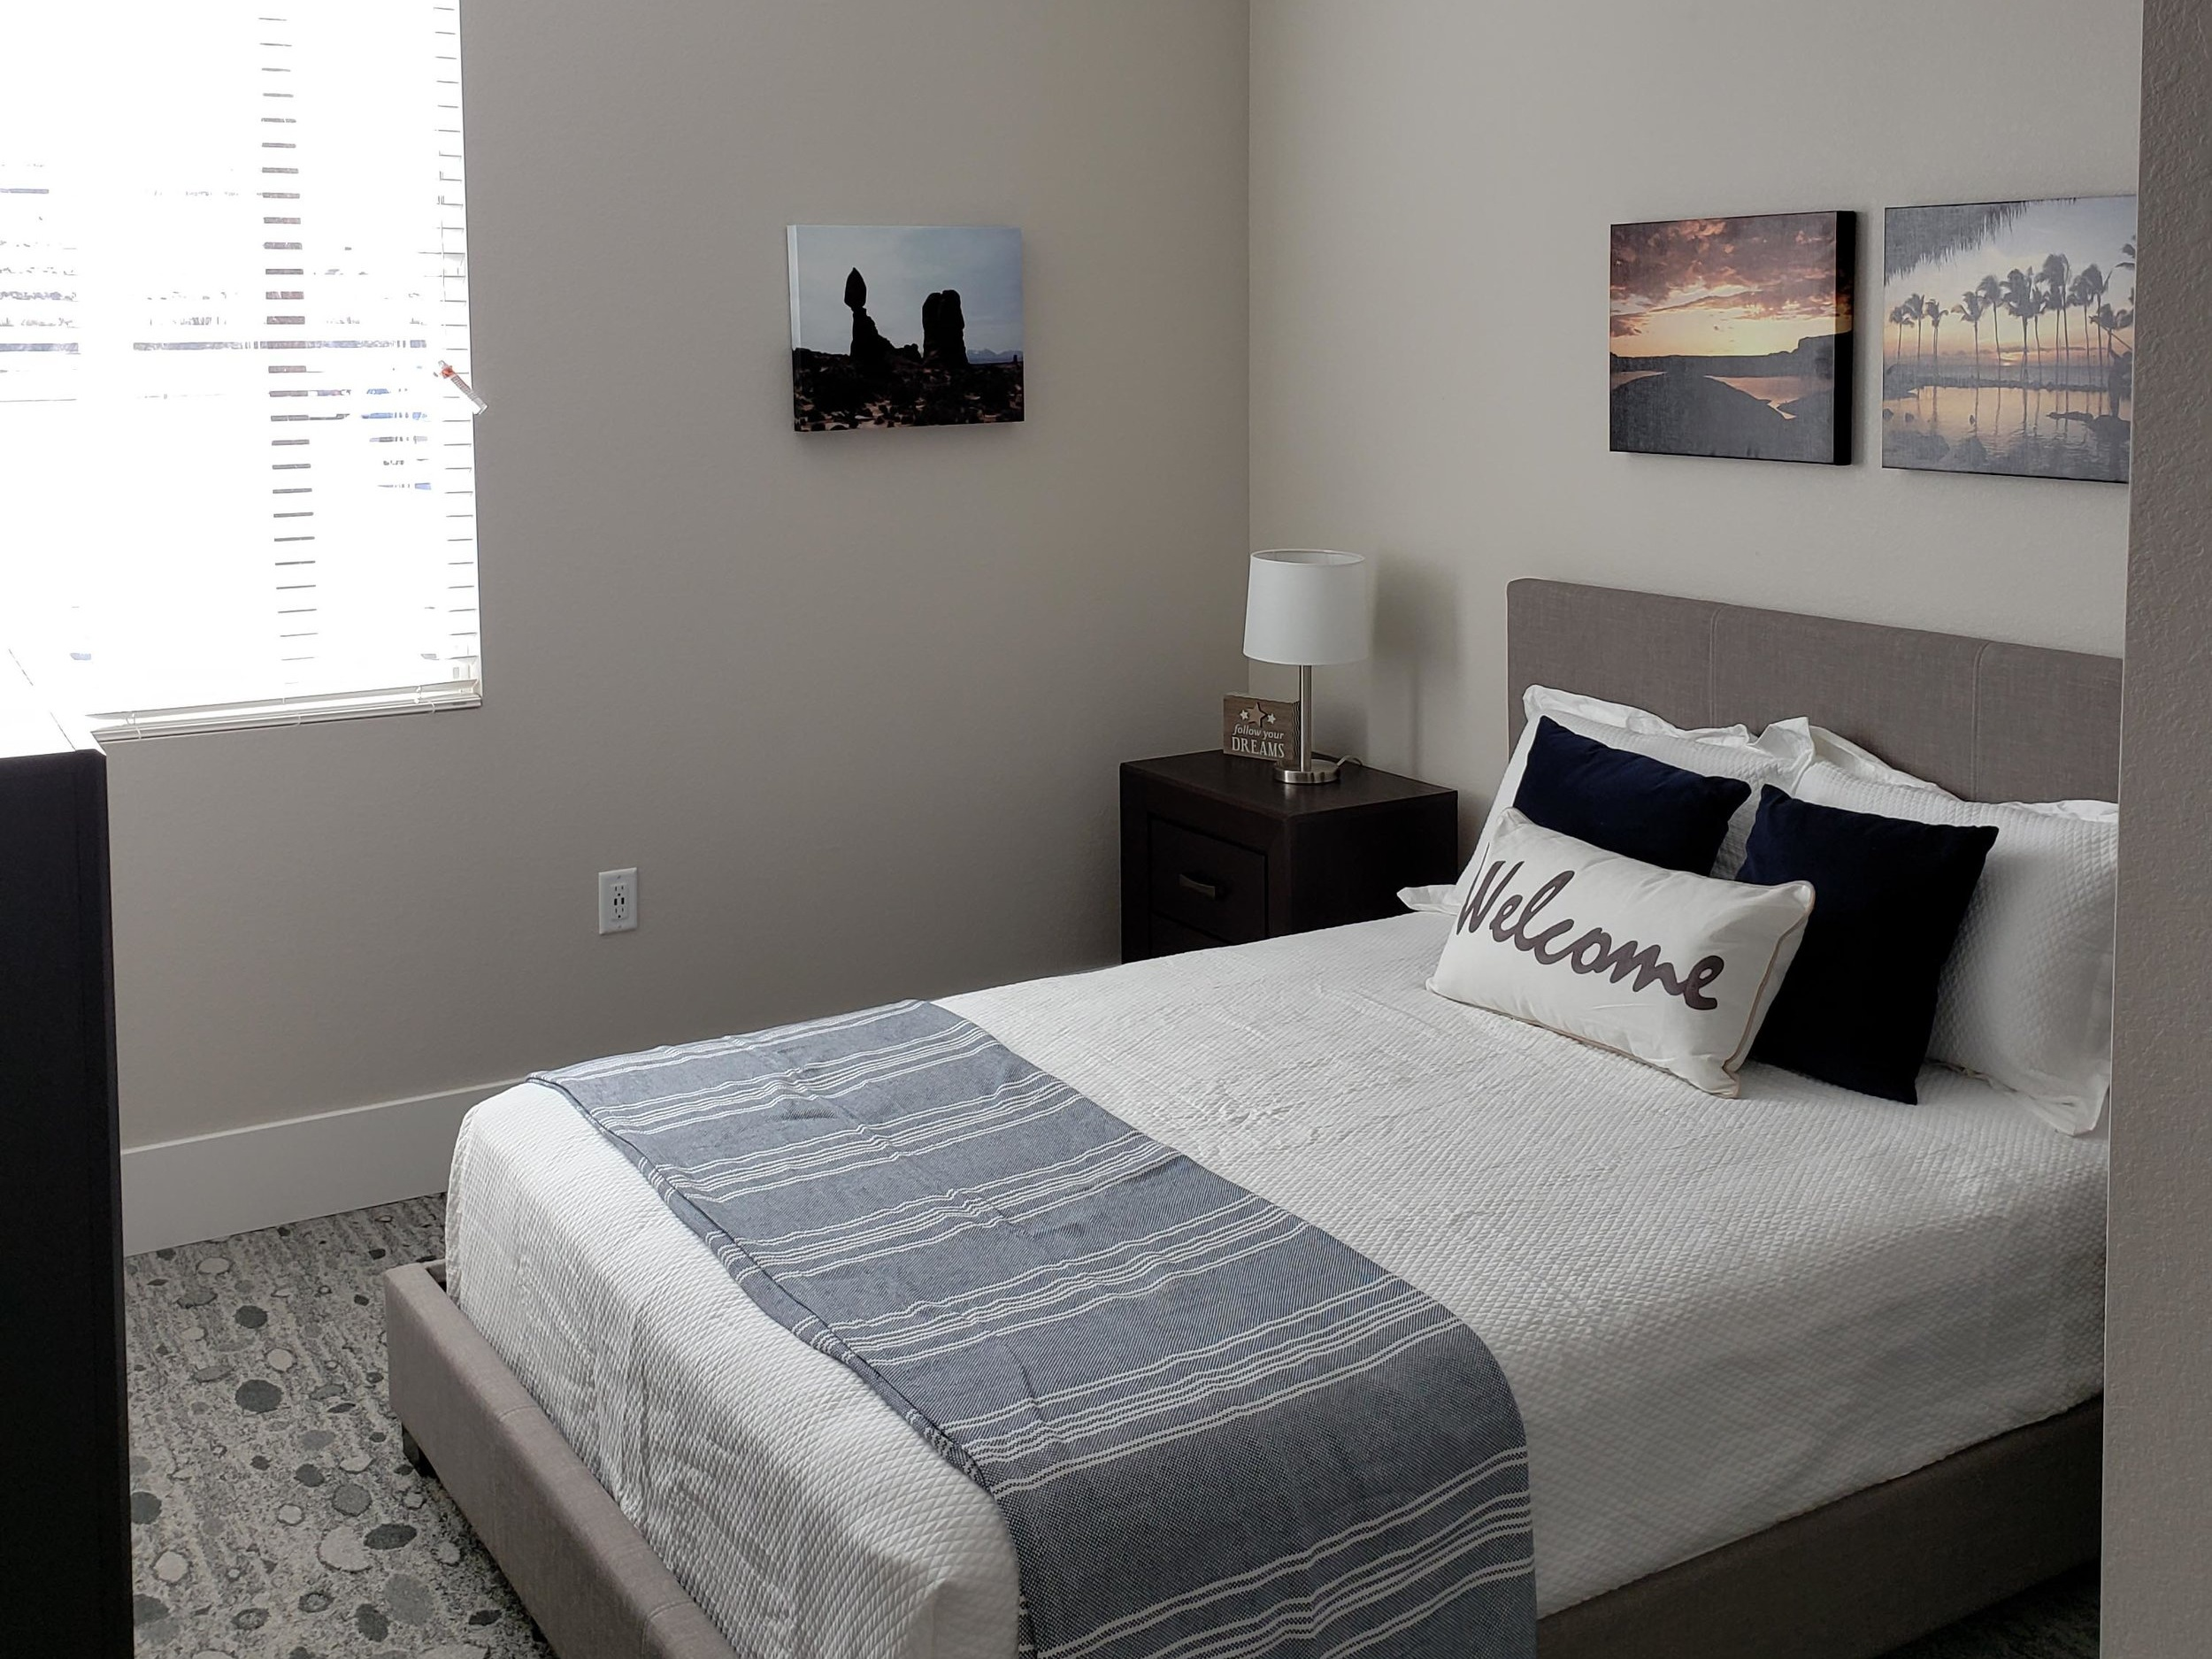 Welcoming Bedrooms